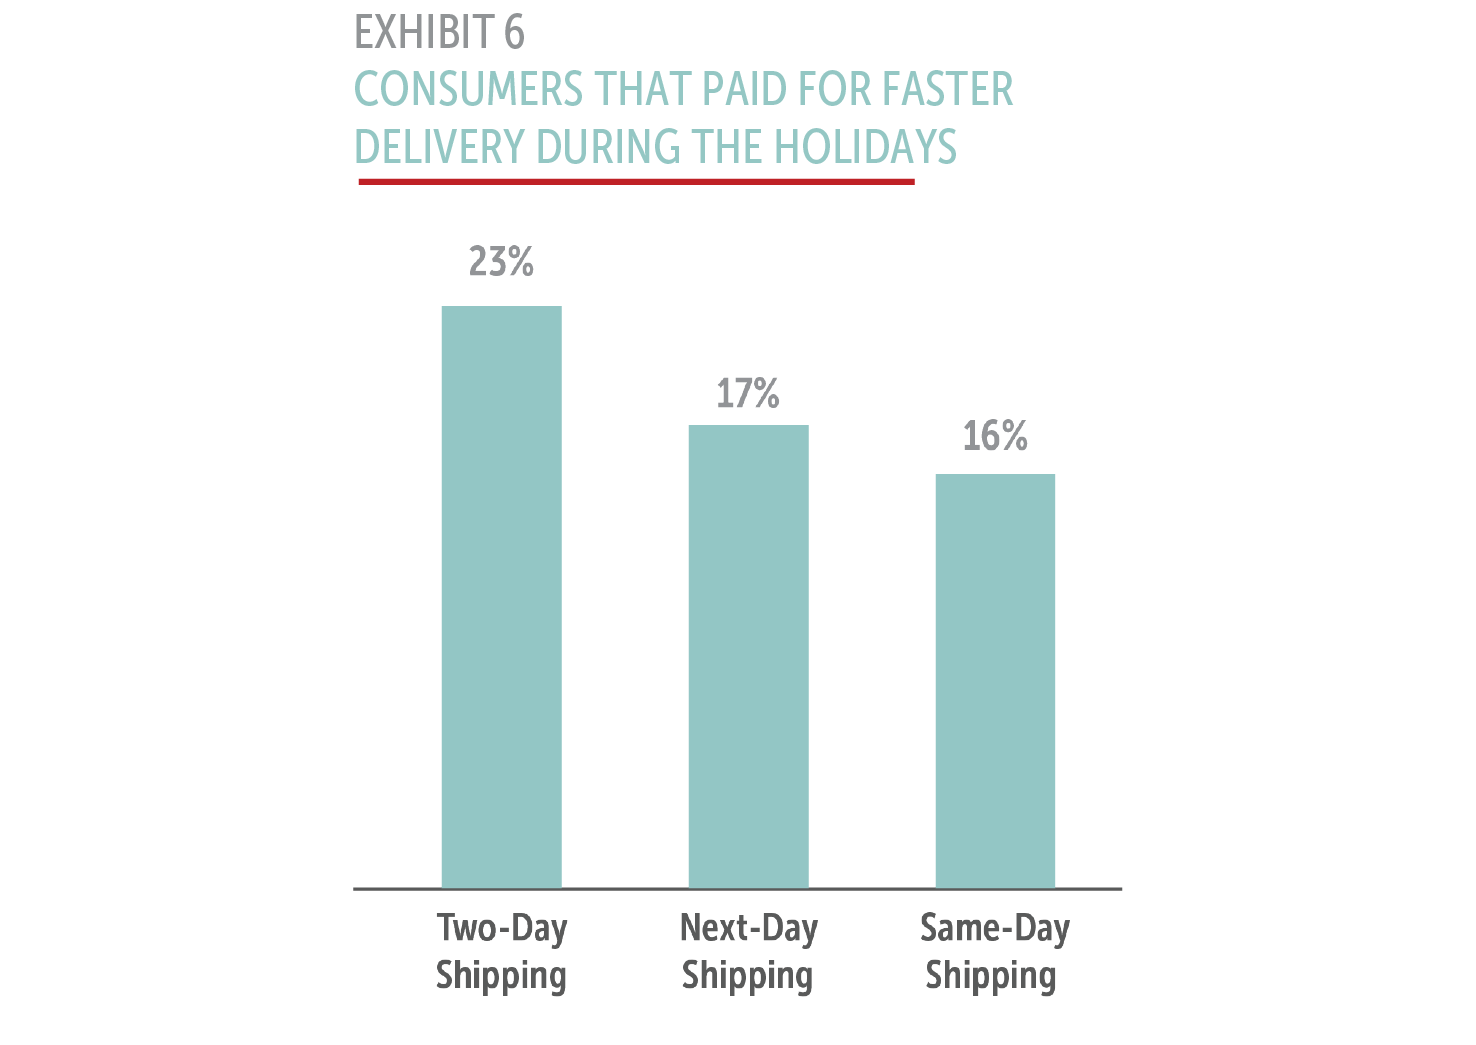 Consumers that paid for faster delivery during the holidays